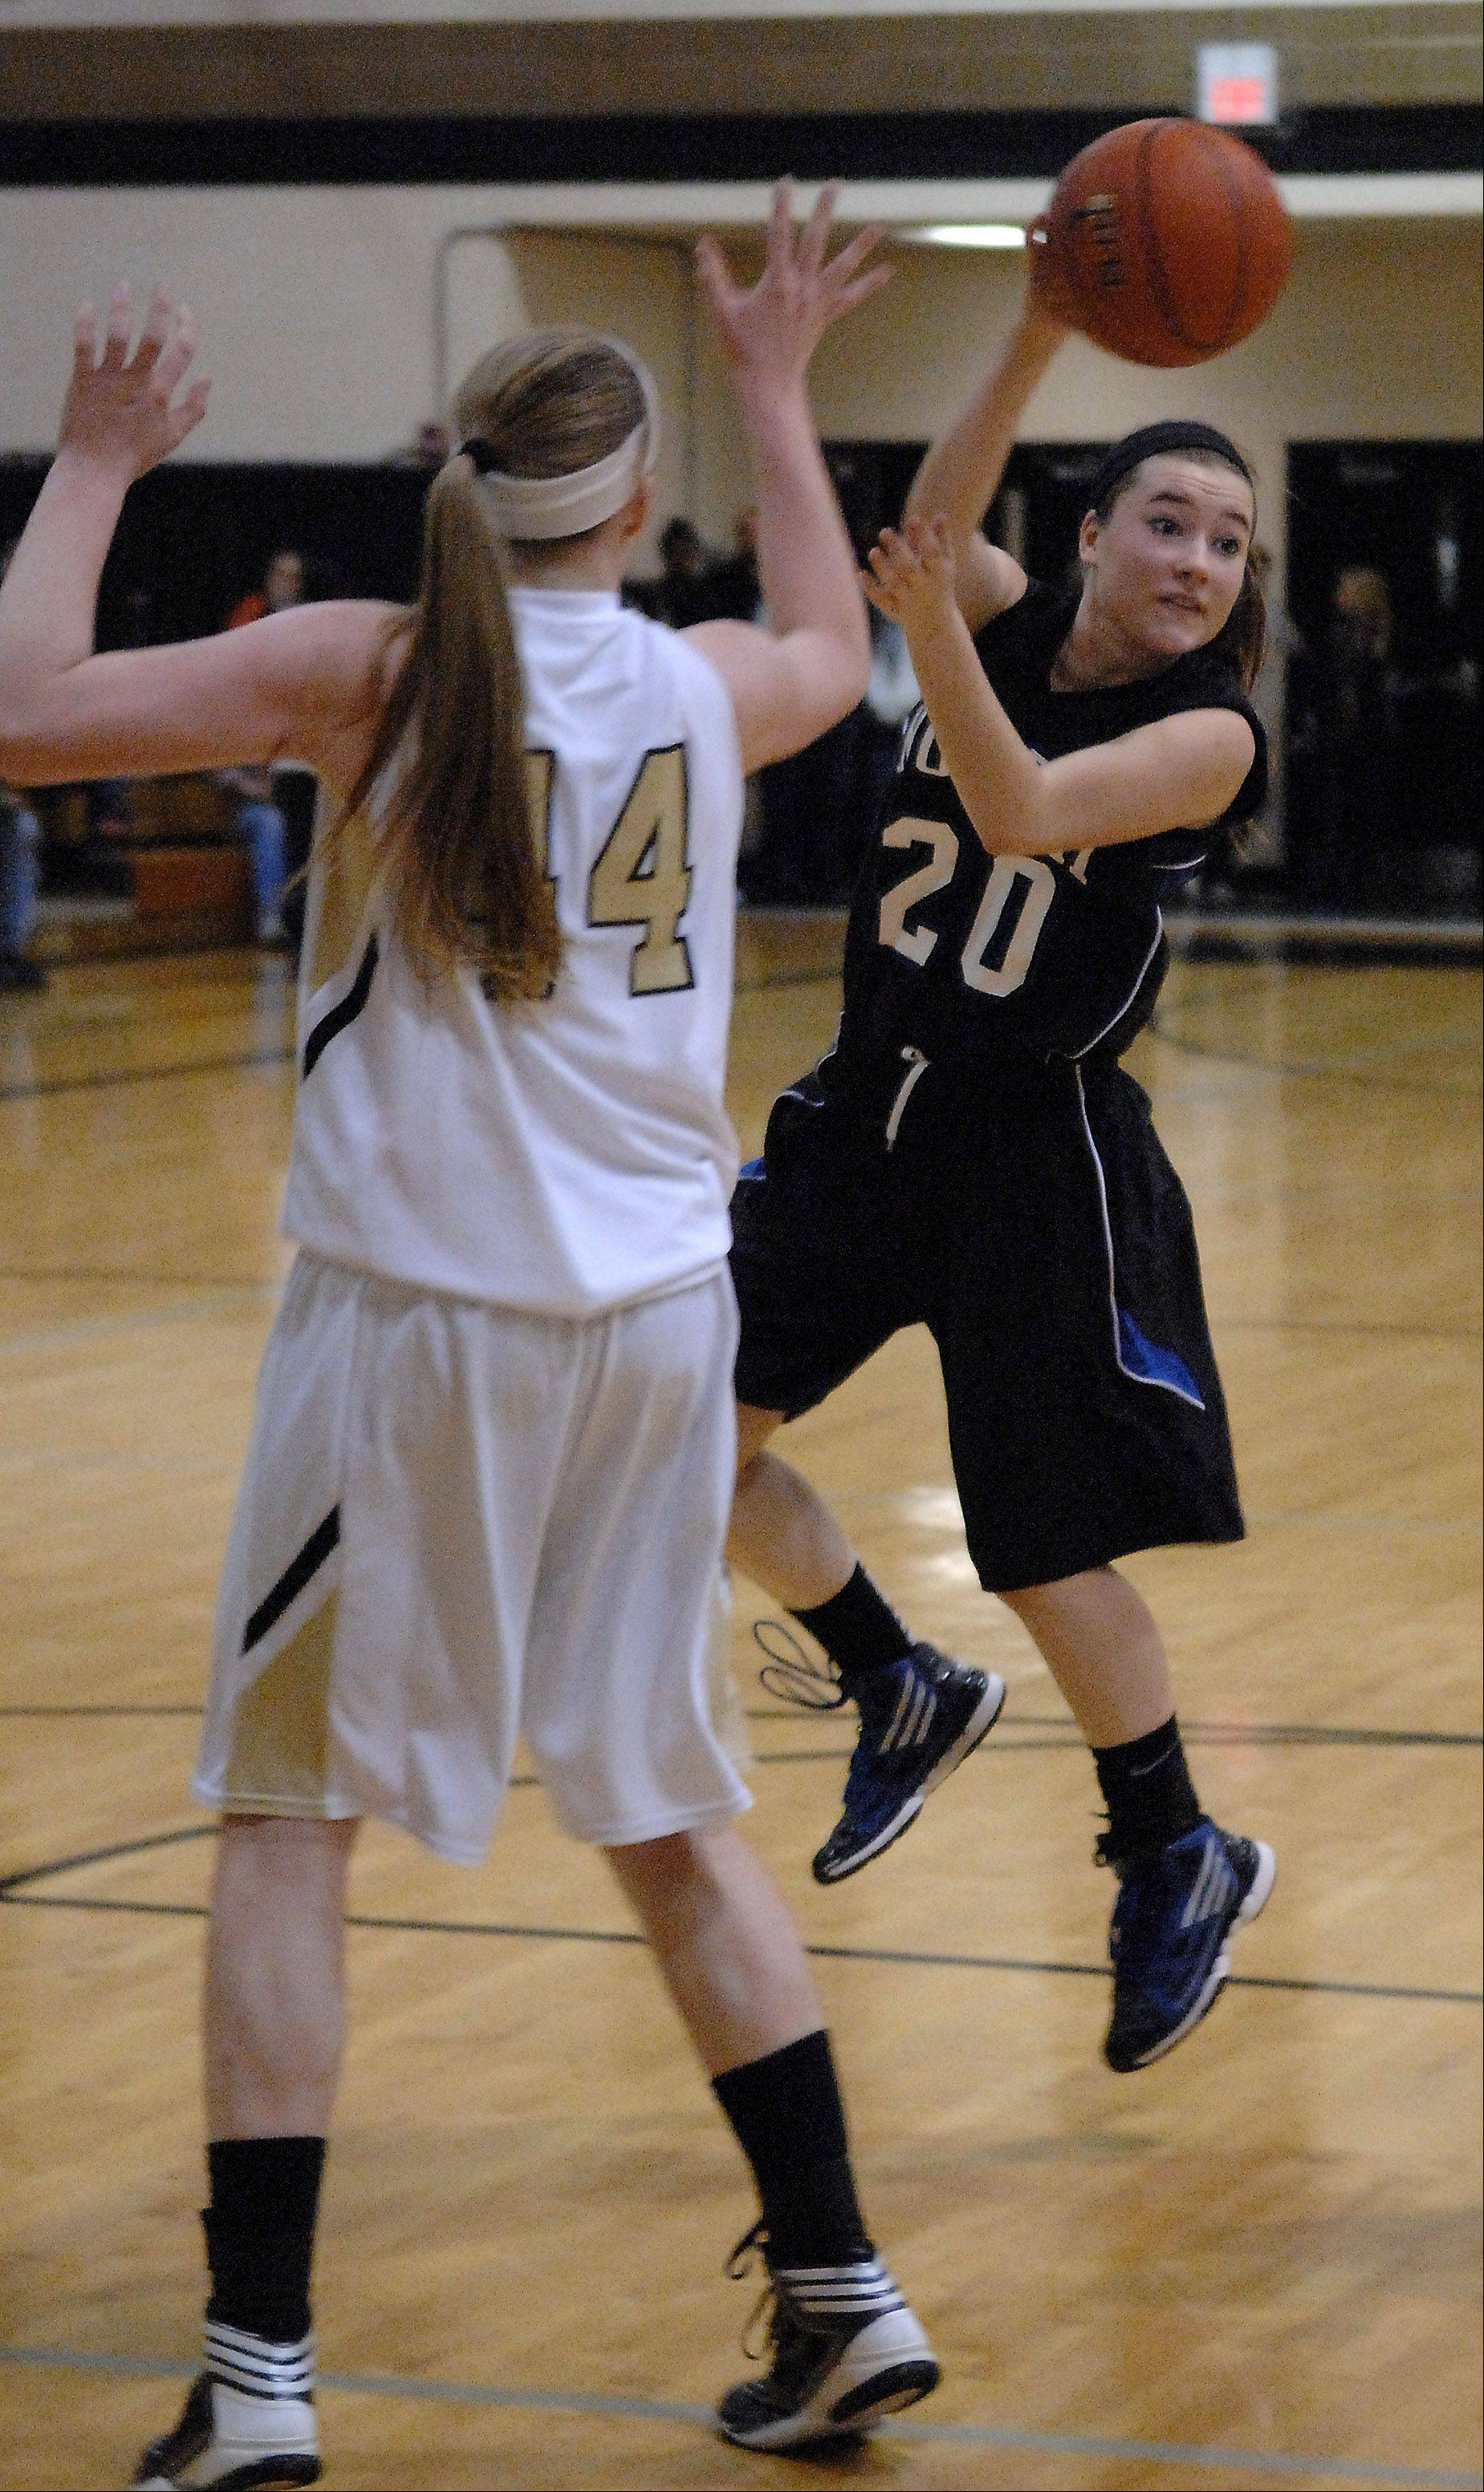 St. Charles North's Sam Novak drives and dishes against Streamwood during Friday's game at Streamwood.